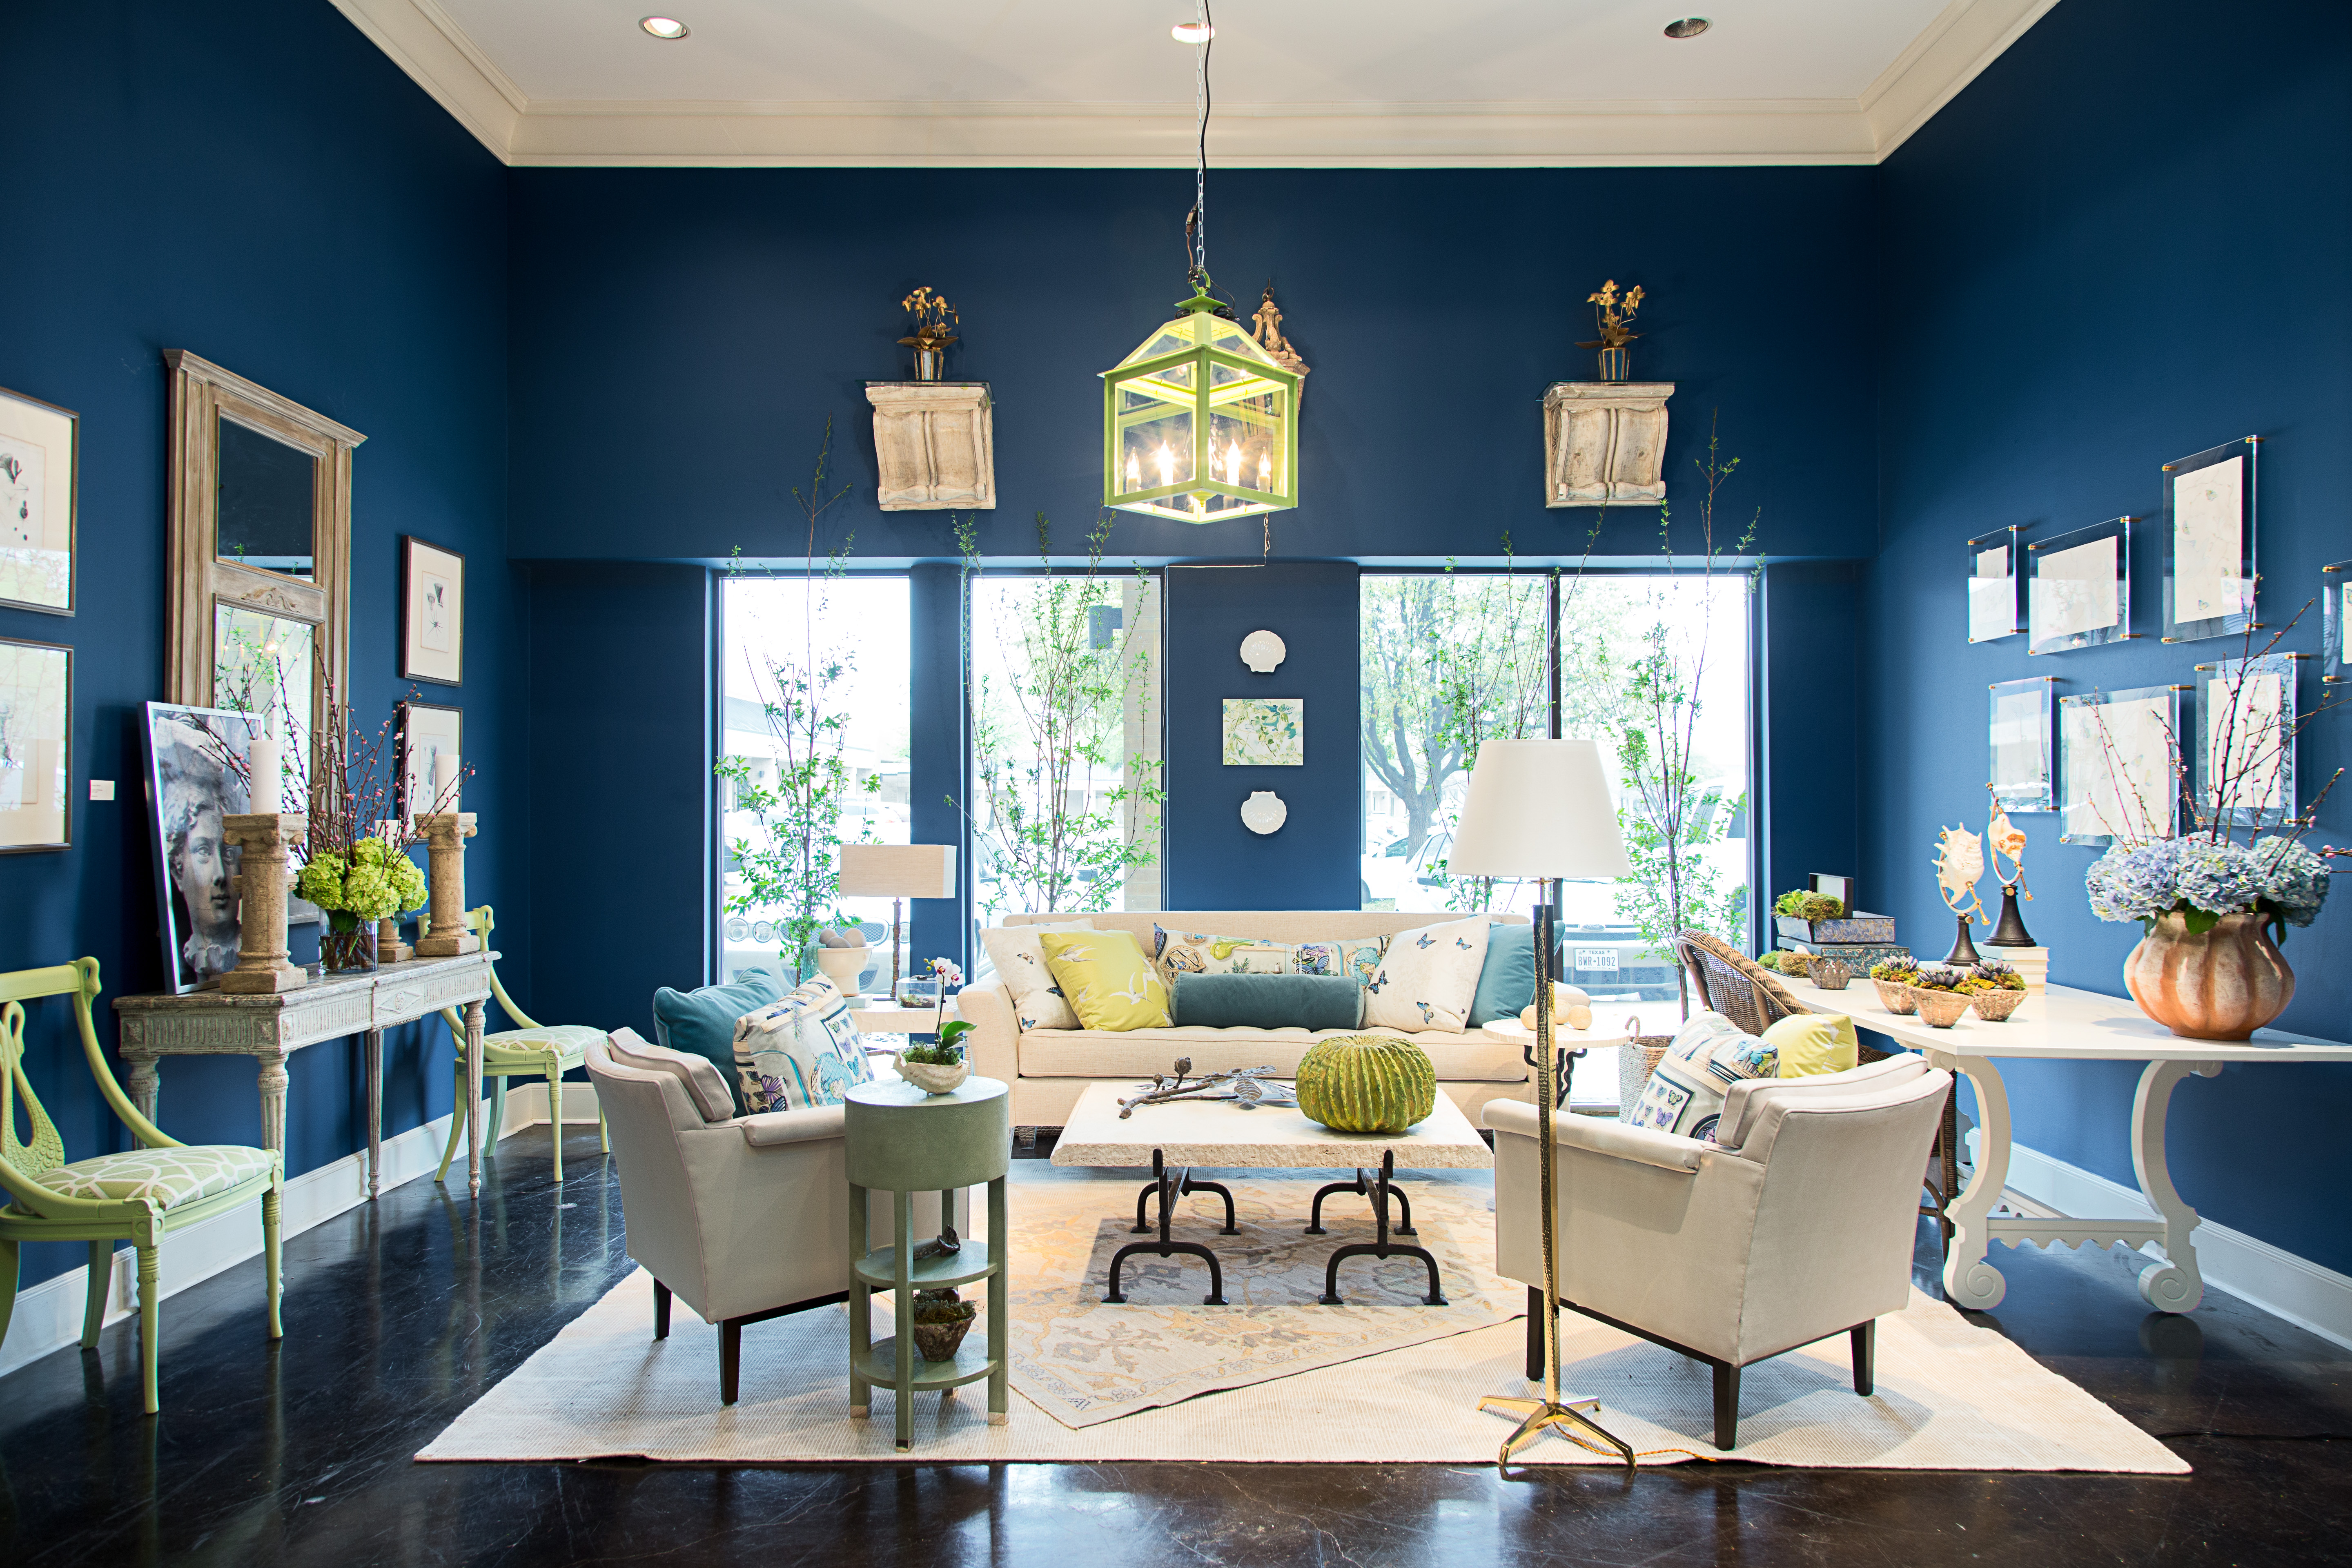 Blue interior design vignette for Dwell With Dignity - DWD-ThriftStudio2018